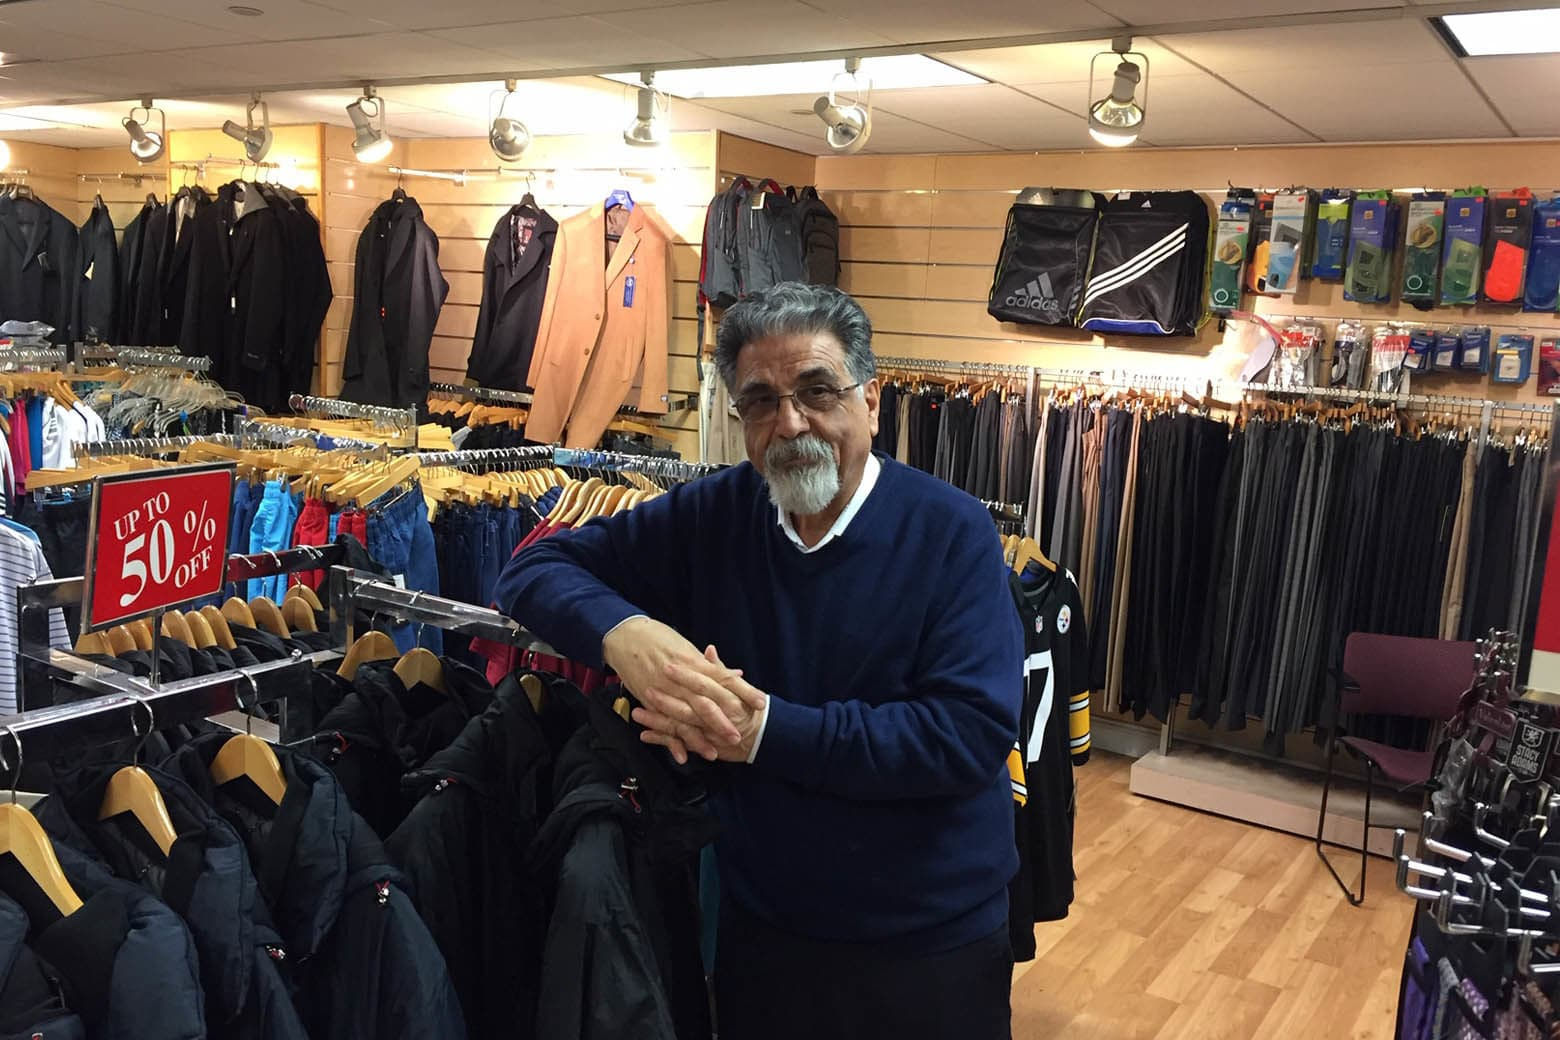 Harry Nash has sold menswear for 31 years at L'Enfant Plaza. He said he's expecting sales to decline by more than 50 percent this month. (WTOP/John Domen)